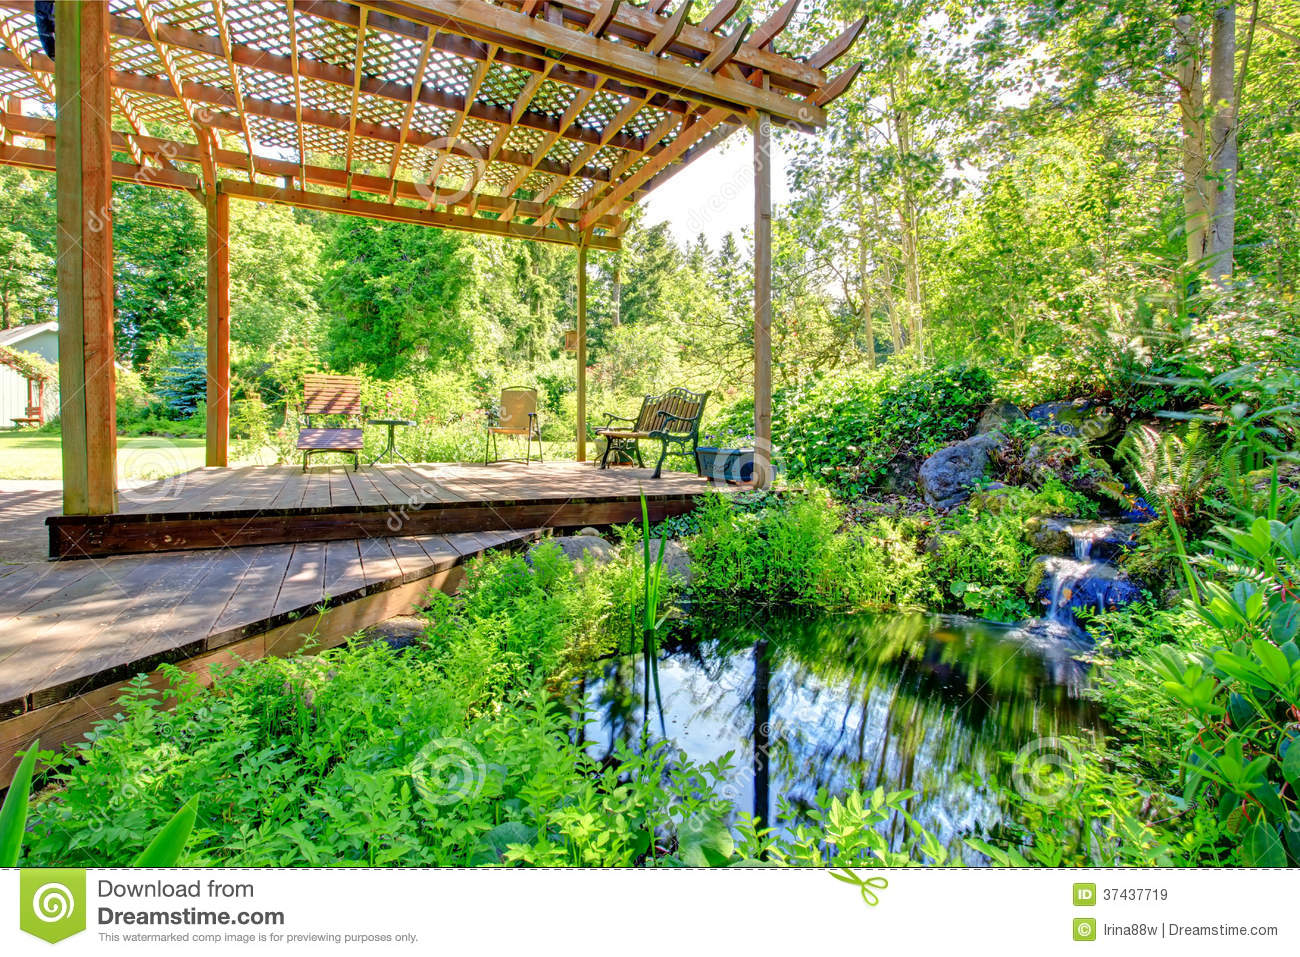 picturesque backyard farm garden with small pond and patio area stock image image of area. Black Bedroom Furniture Sets. Home Design Ideas